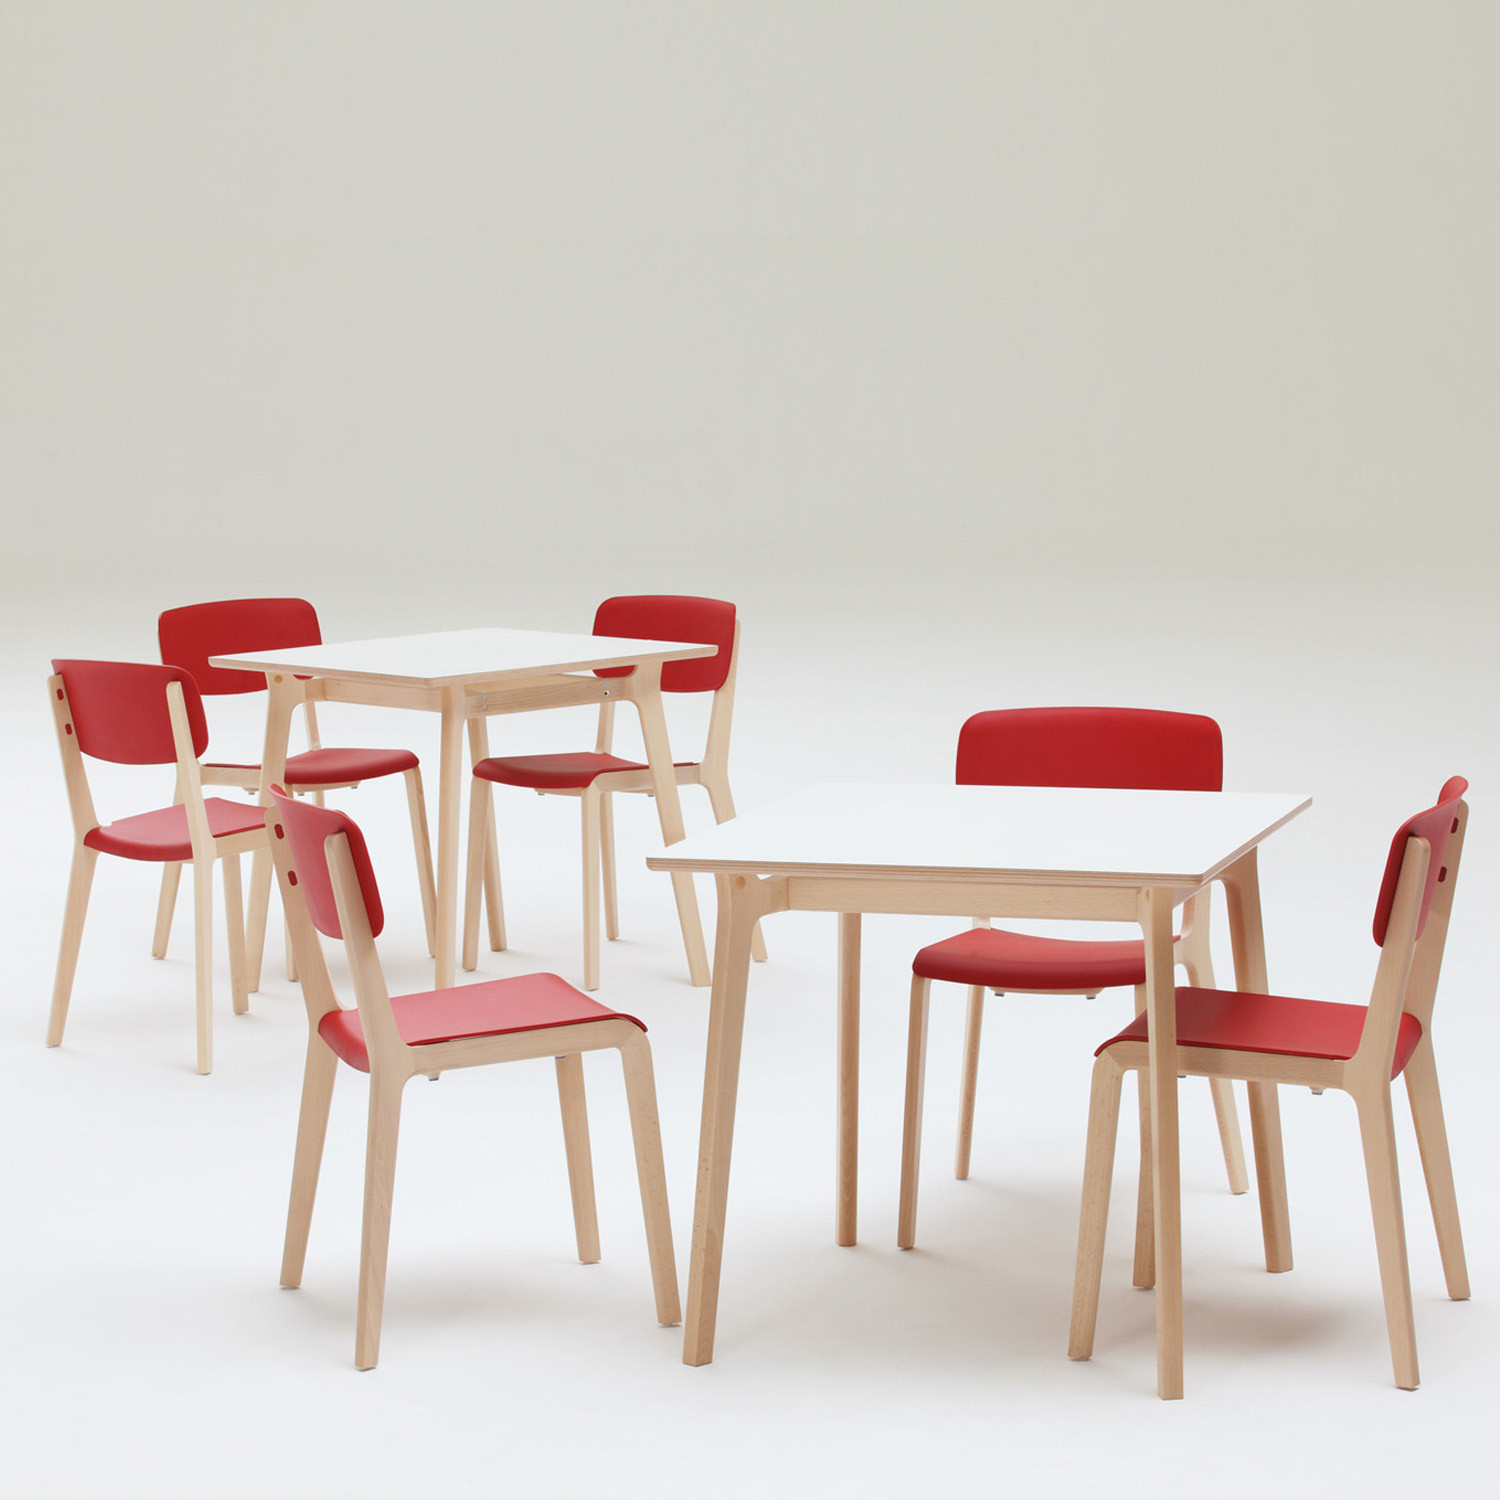 Jonty Cafe Tables + Jonty Cafe Chairs